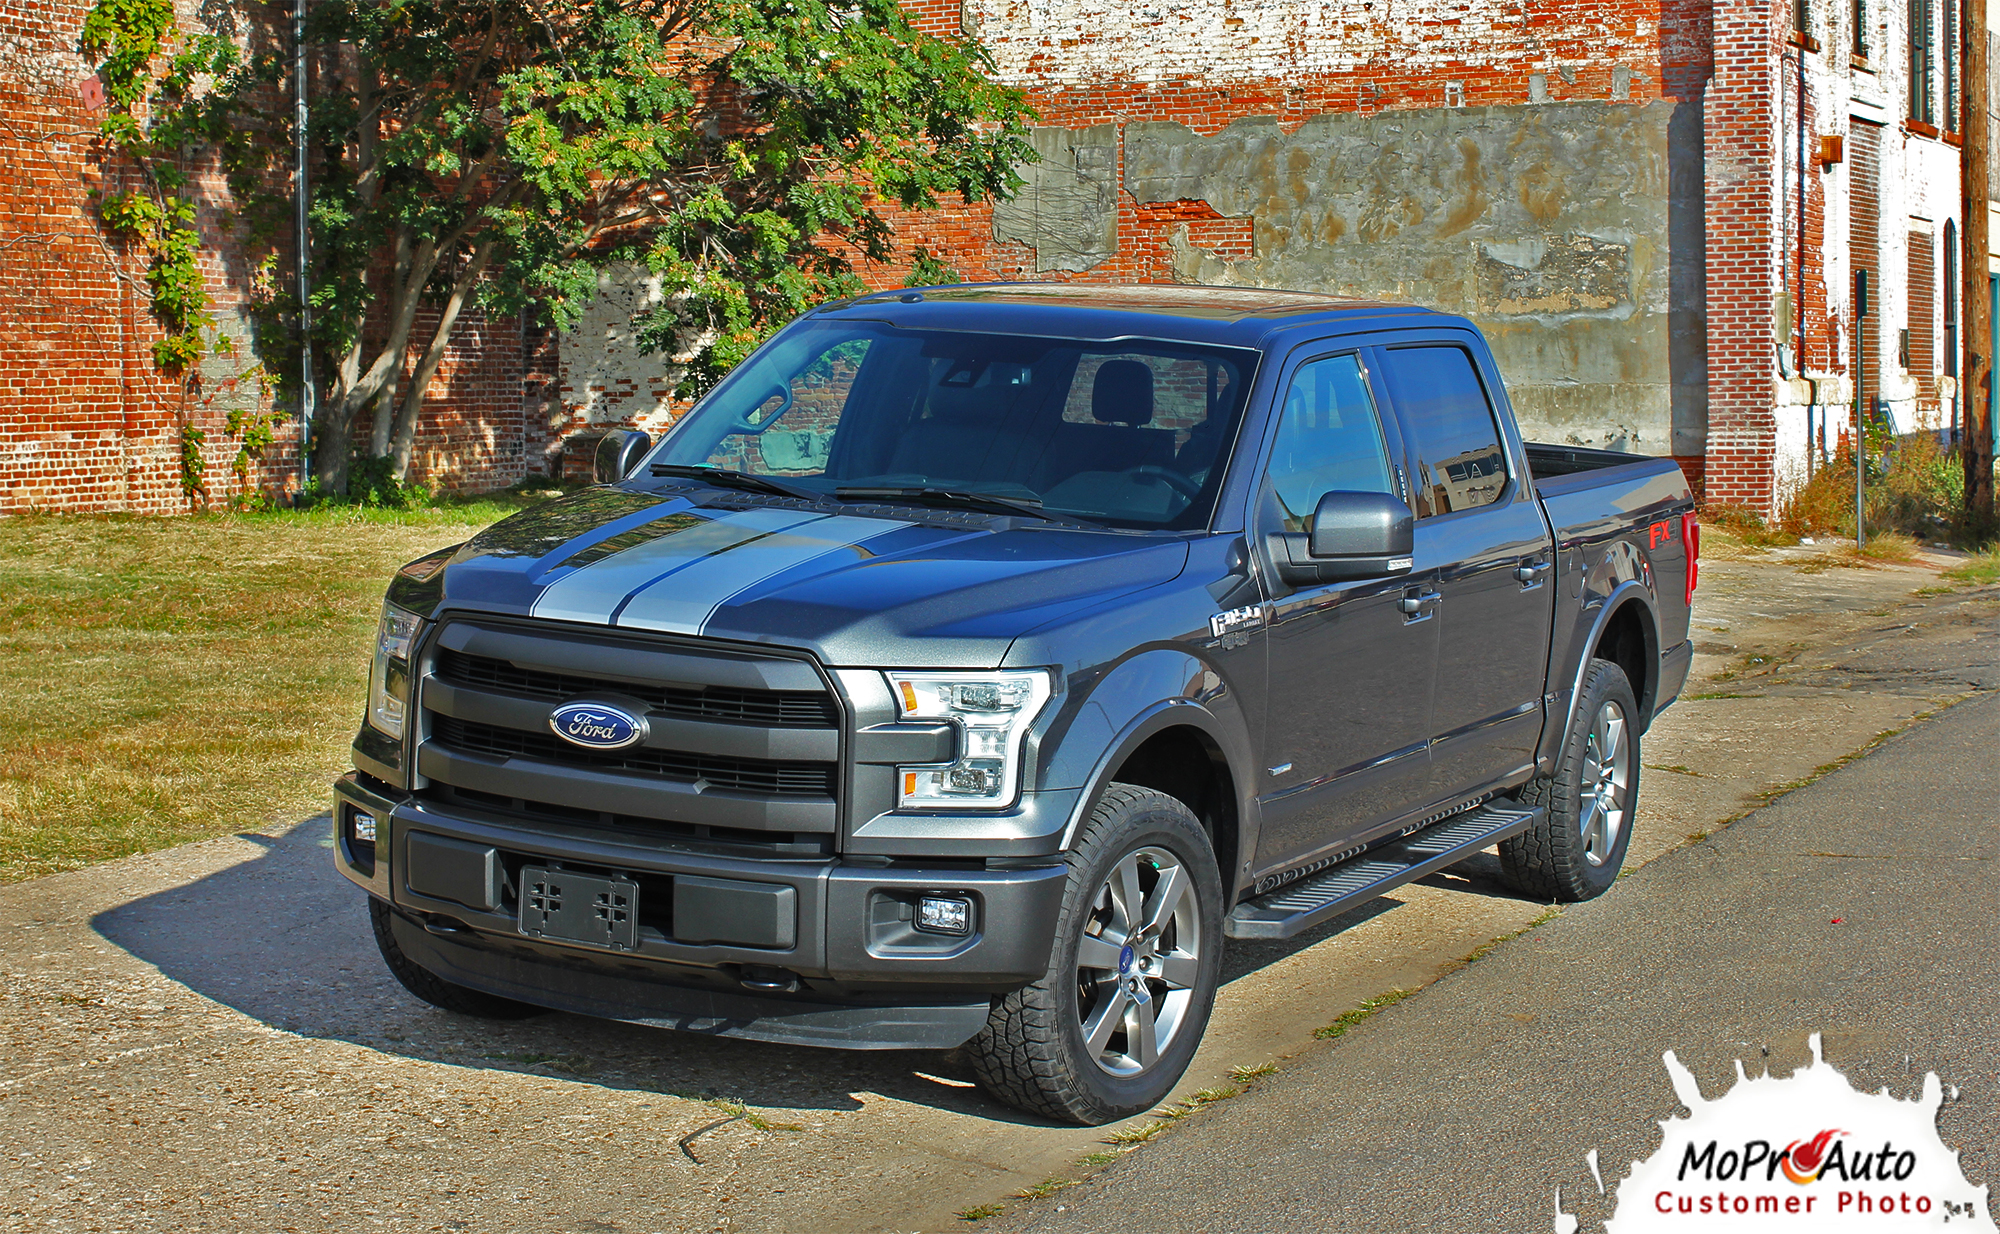 2015 2016 2017 2018 Ford F-Series F-150 - F-RALLY MoProAuto Pro Design Series Vinyl Graphics and Decals Kit F-RALLY